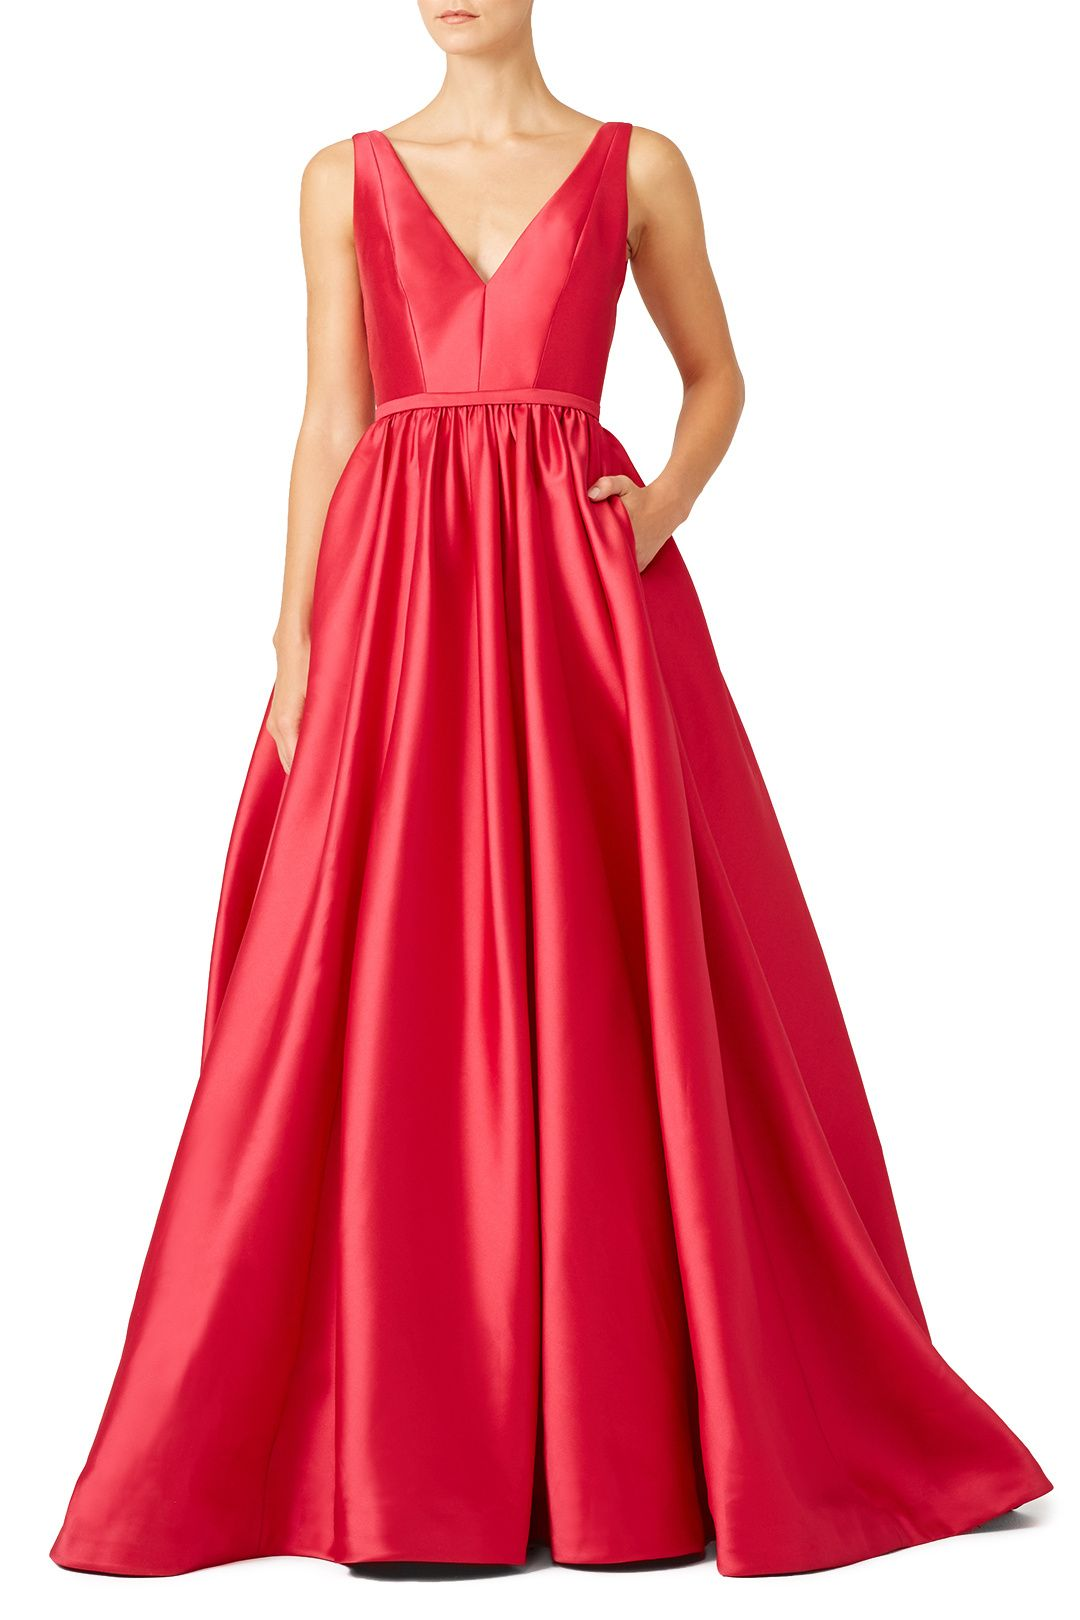 Pomegranate Gown | Monique lhuillier, Pomegranates and Gowns